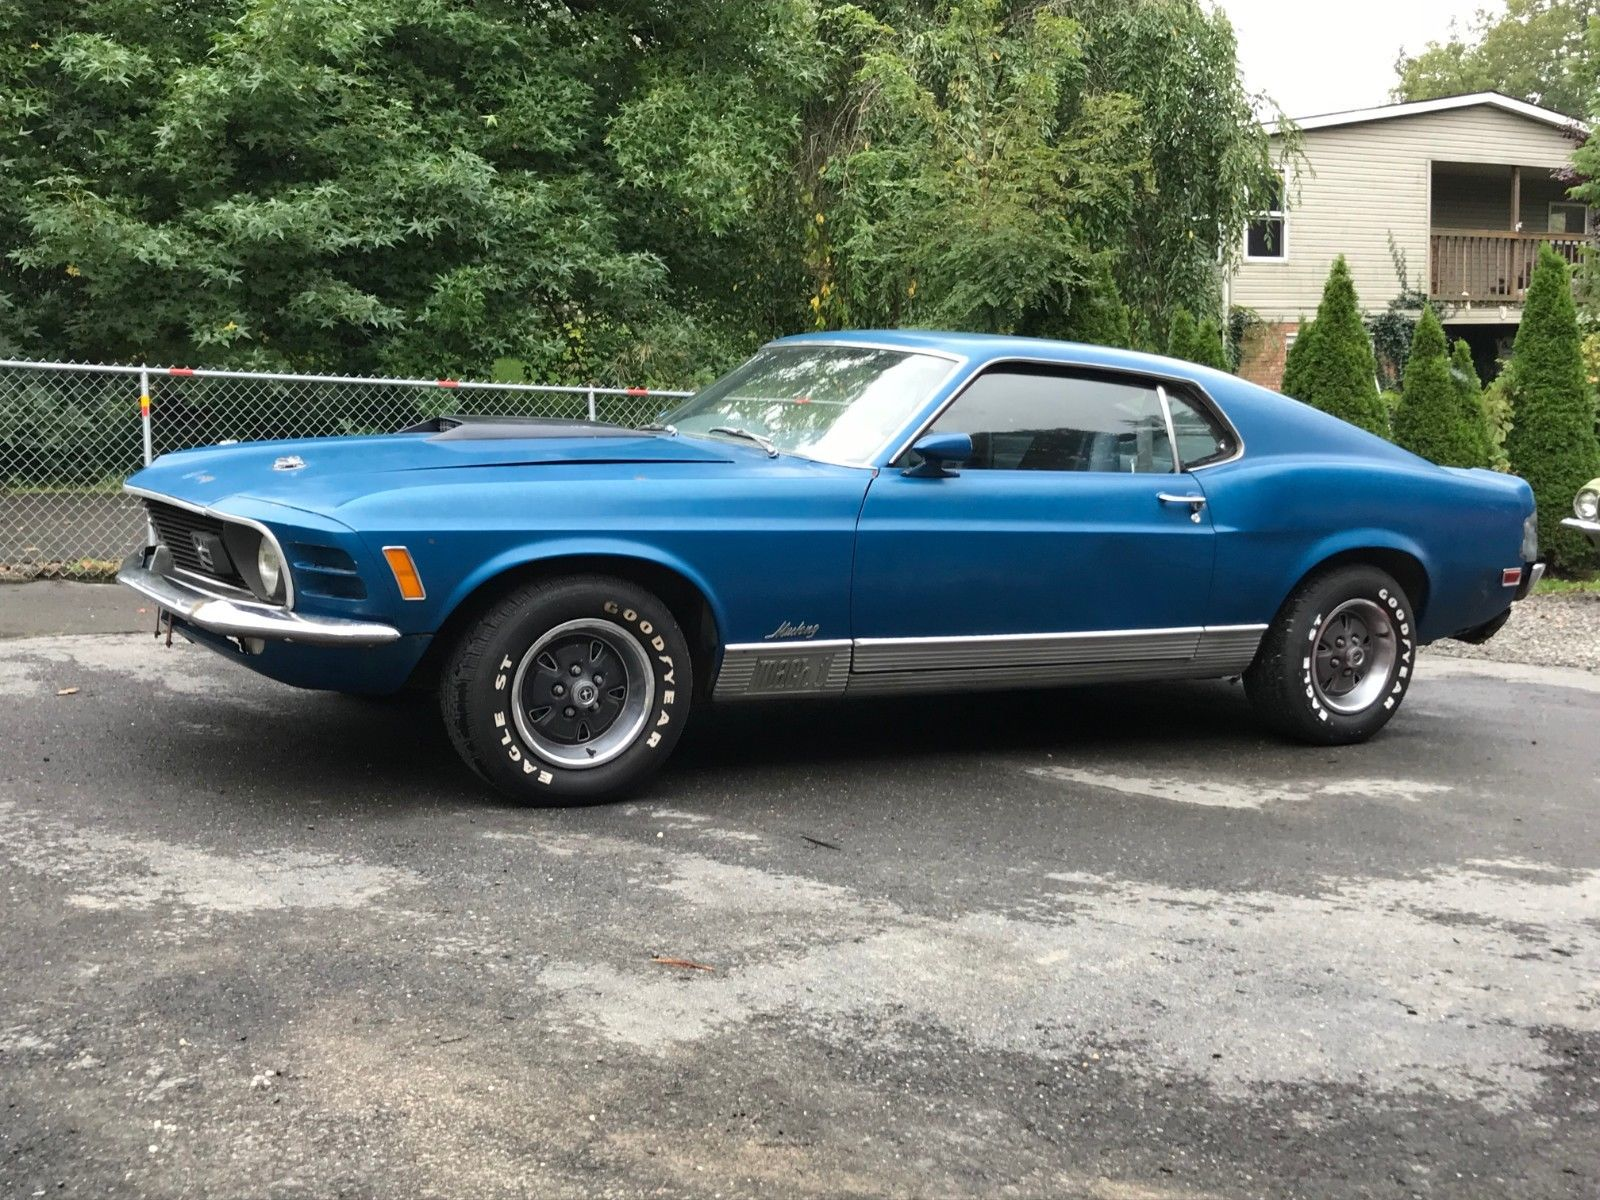 Awesome 1970 ford mustang 1970 ford mustang mach 1 survivor h code 351 bright blue basically all original 2018 2019